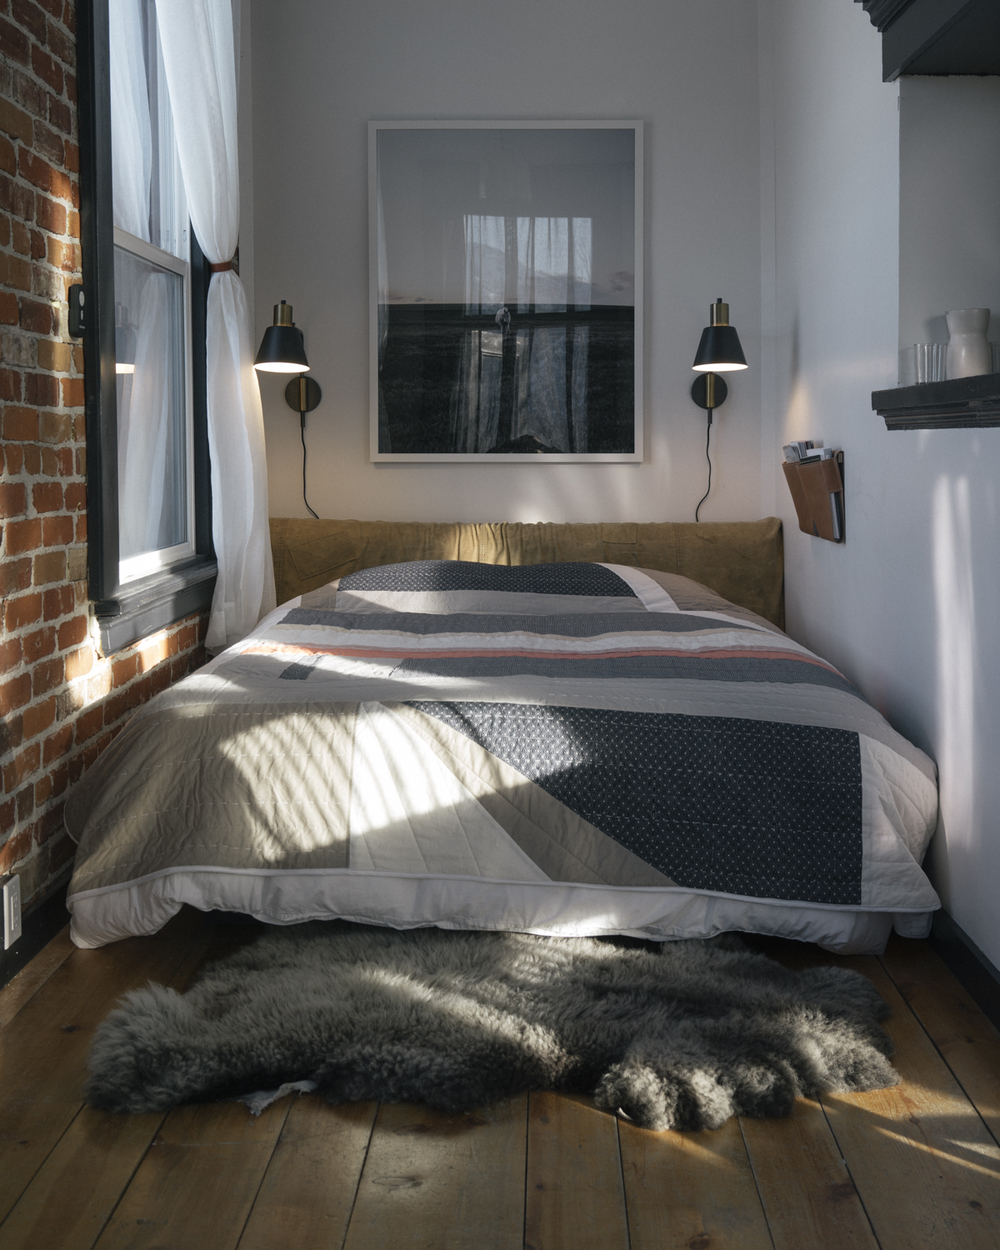 The incredibly comfortable bed with custom headboard from  Revive Designs  and leather magazine pouches from  Wood & Faulk